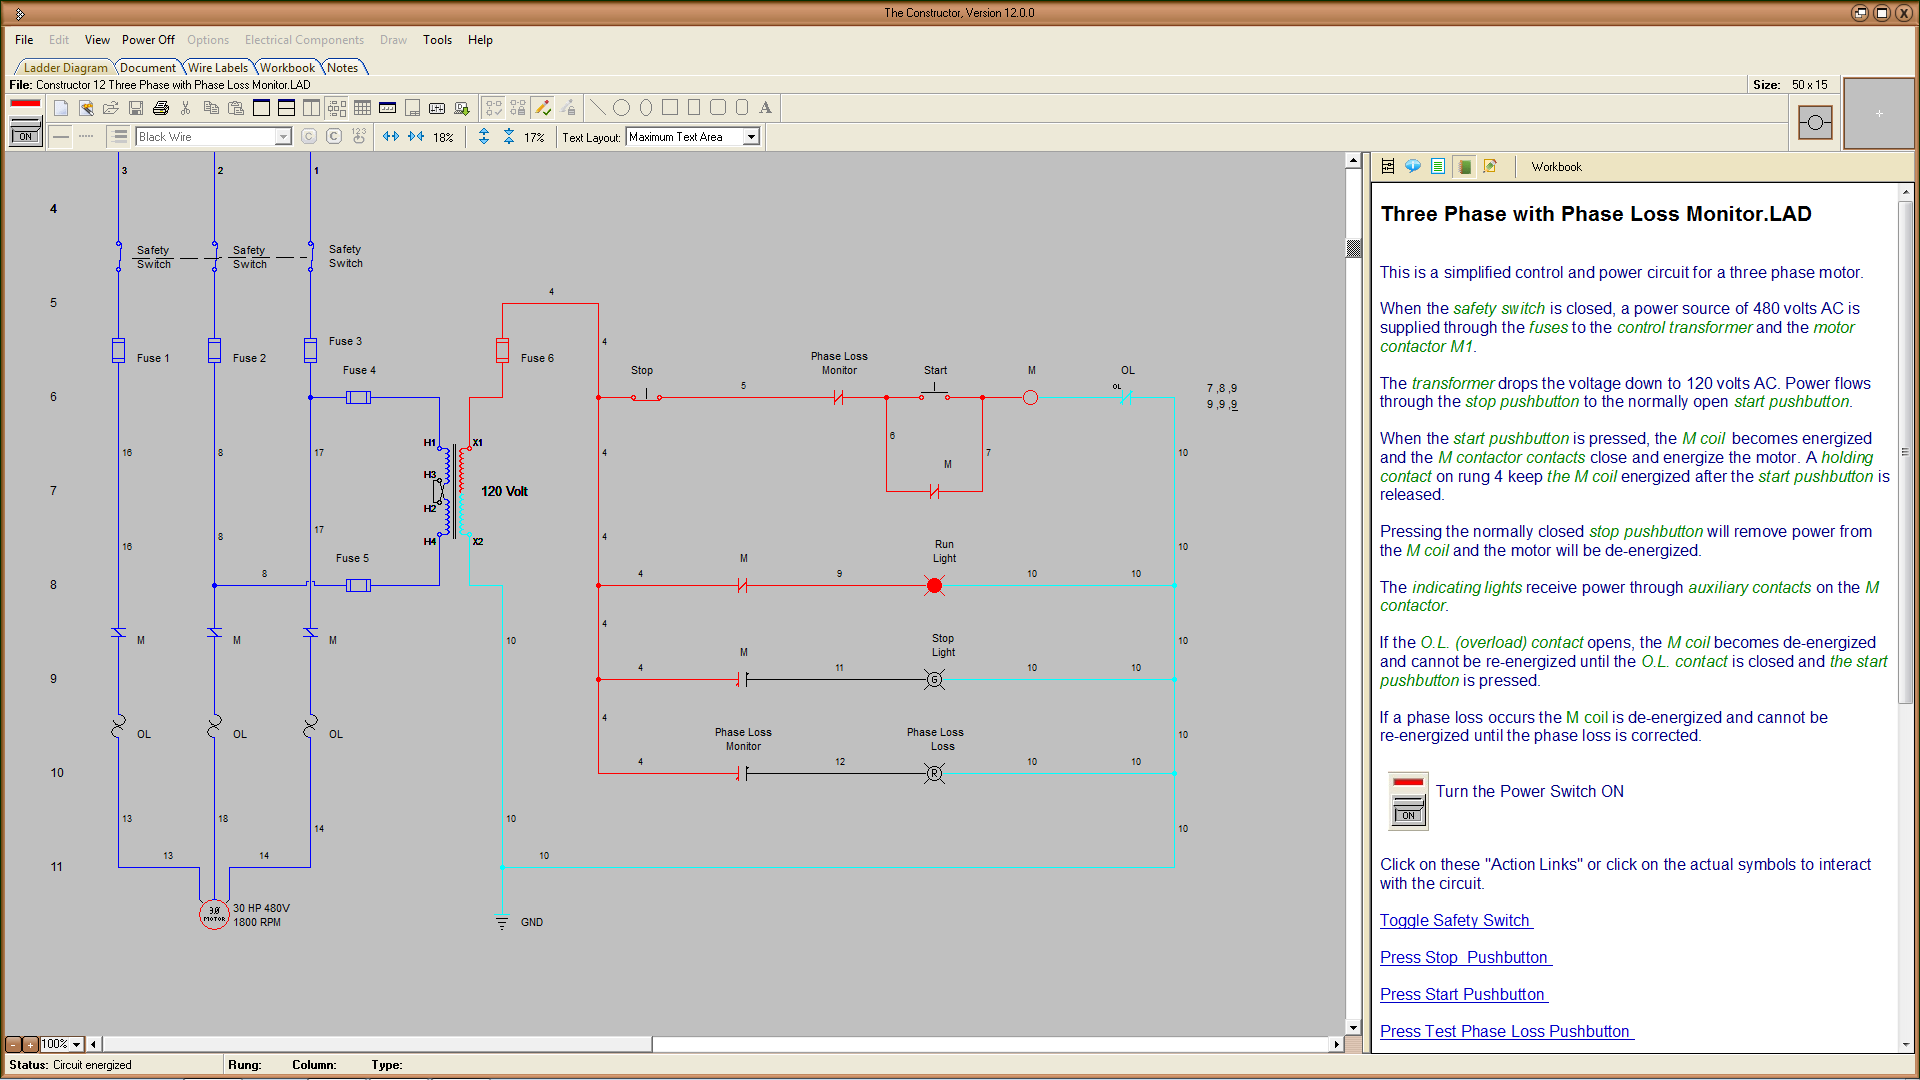 Electrical Circuits Simulation Software New Troubleshooting Plc Controls With Simulator